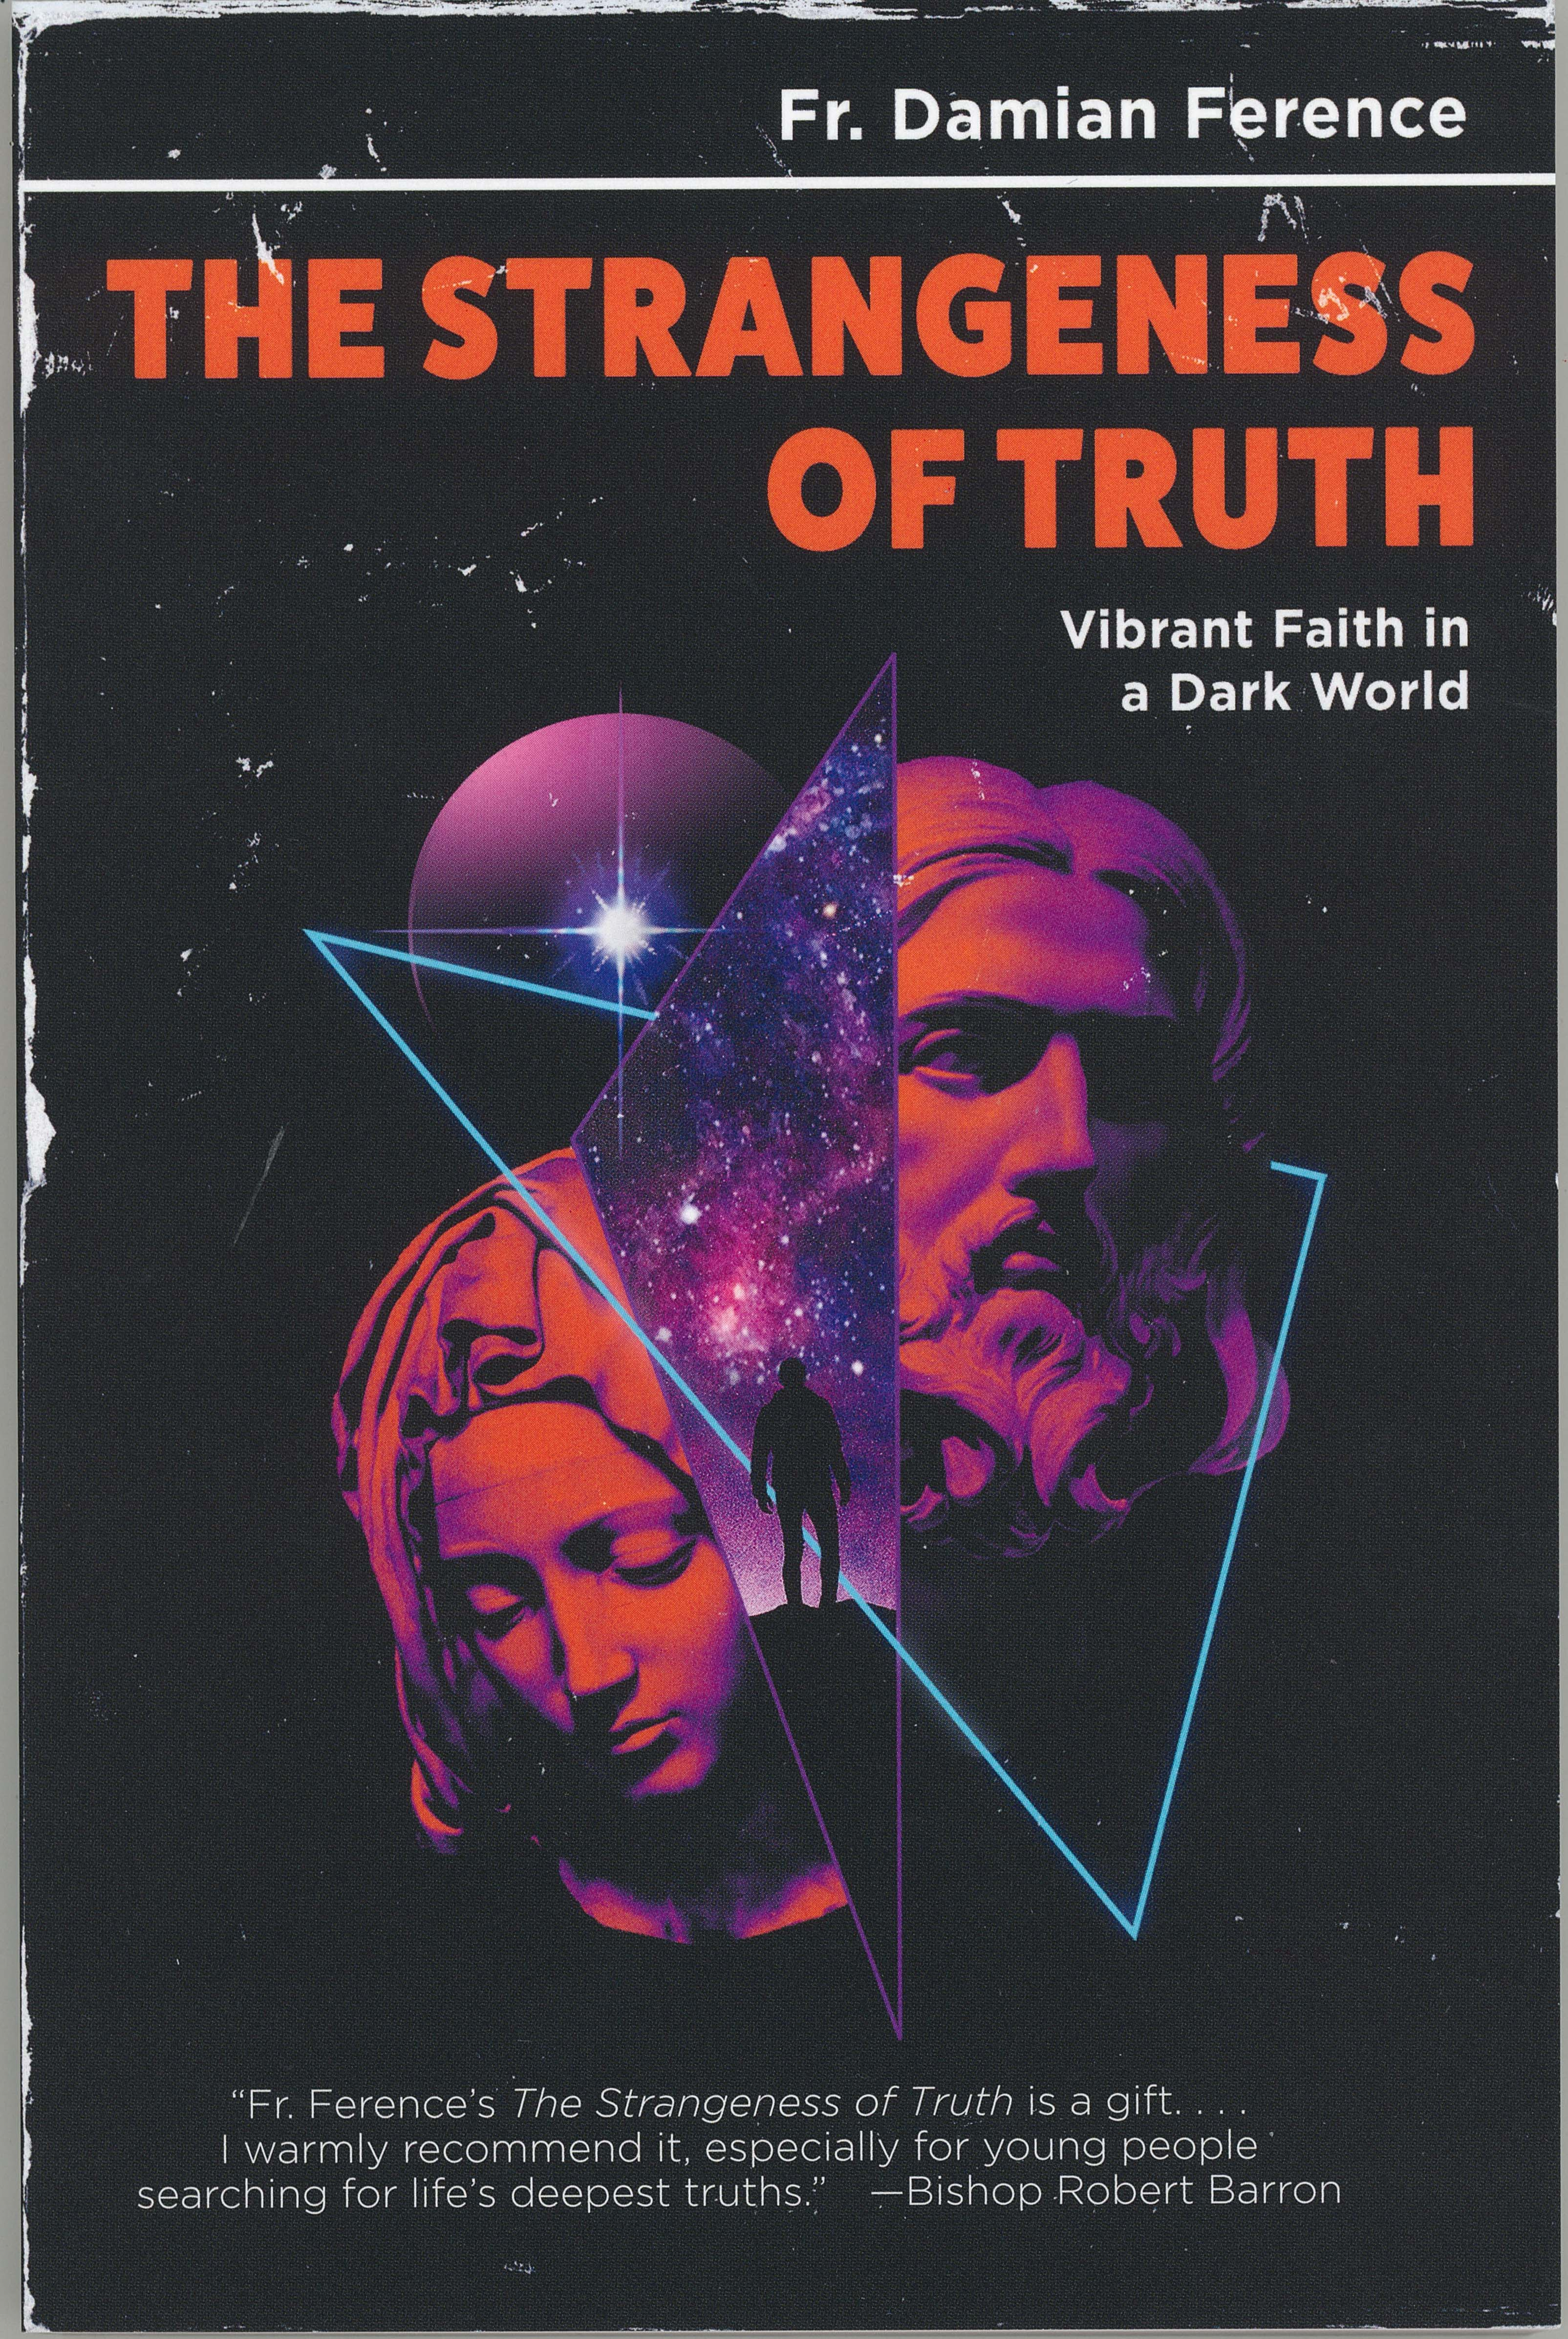 The Strangeness of Truth - Vibrant Faith in a Dark World by Fr. Damian Ference ISBN: 0819891266 EAN: 9780819891266